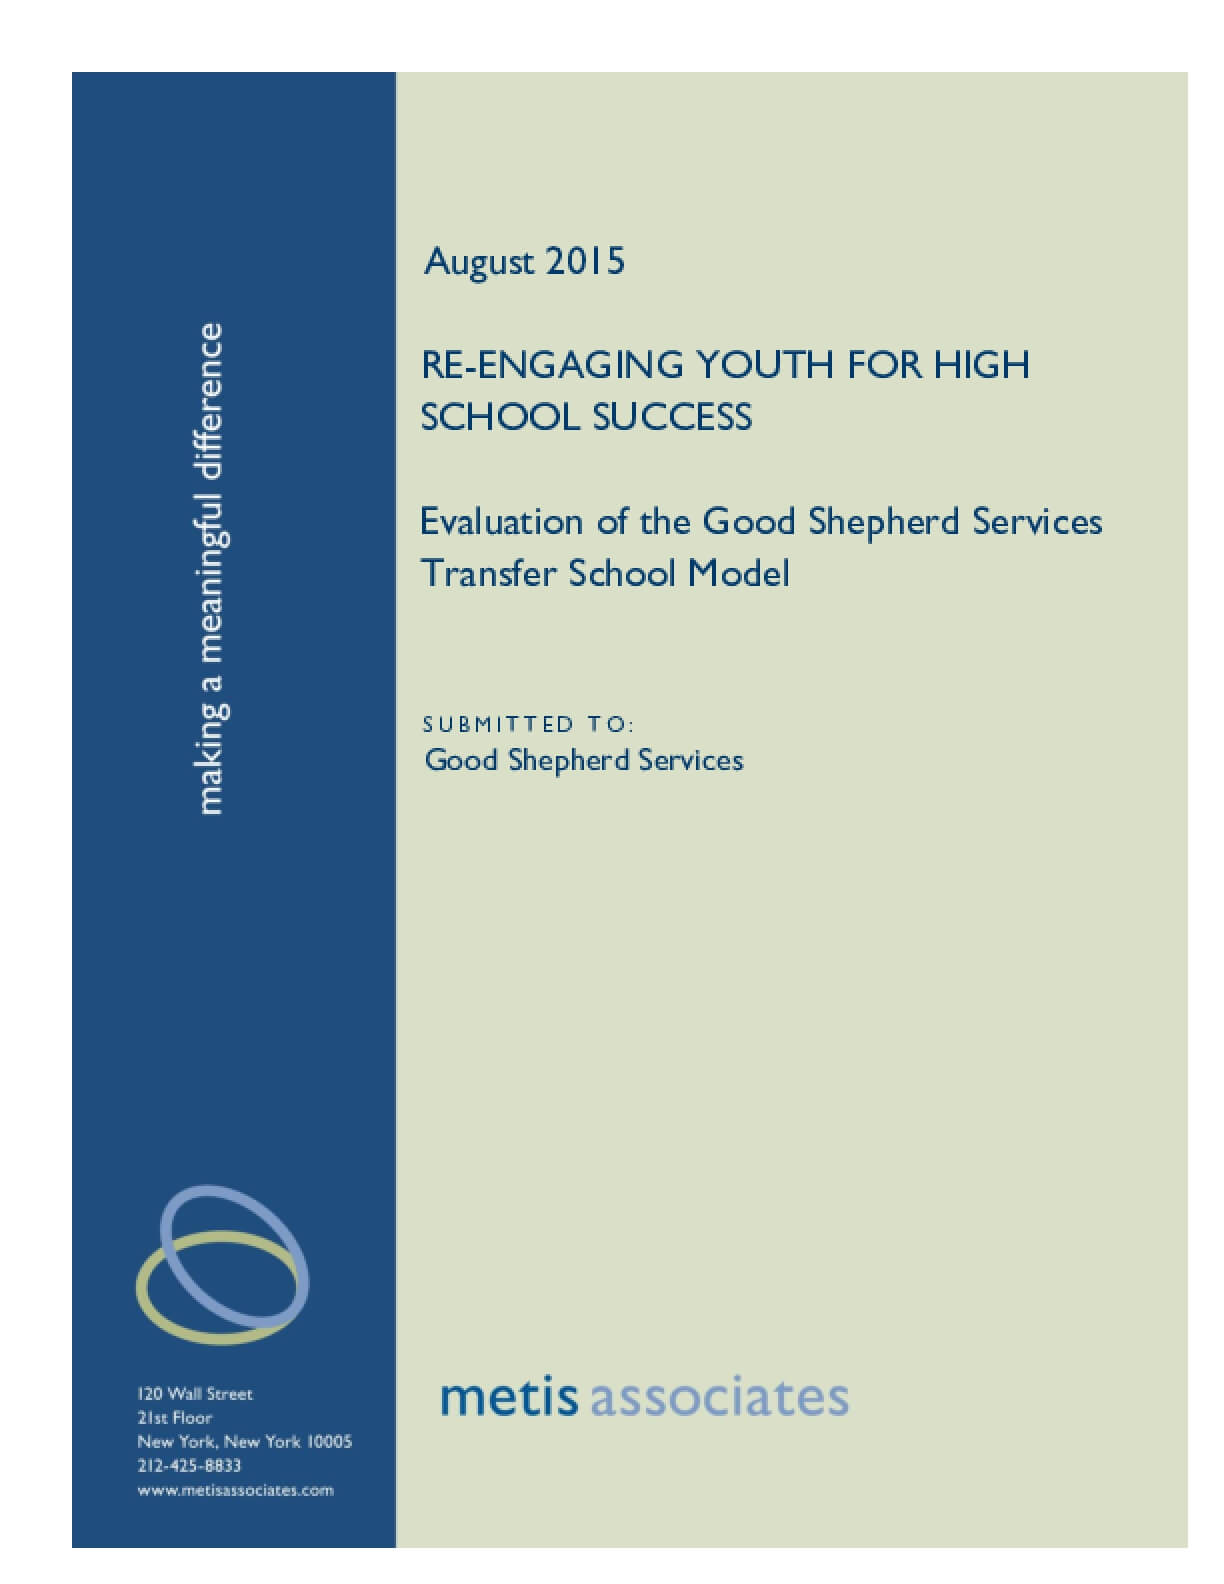 Re-engaging Youth for High School Success. Evaluation of the Good Shepherd Services Transfer School Model